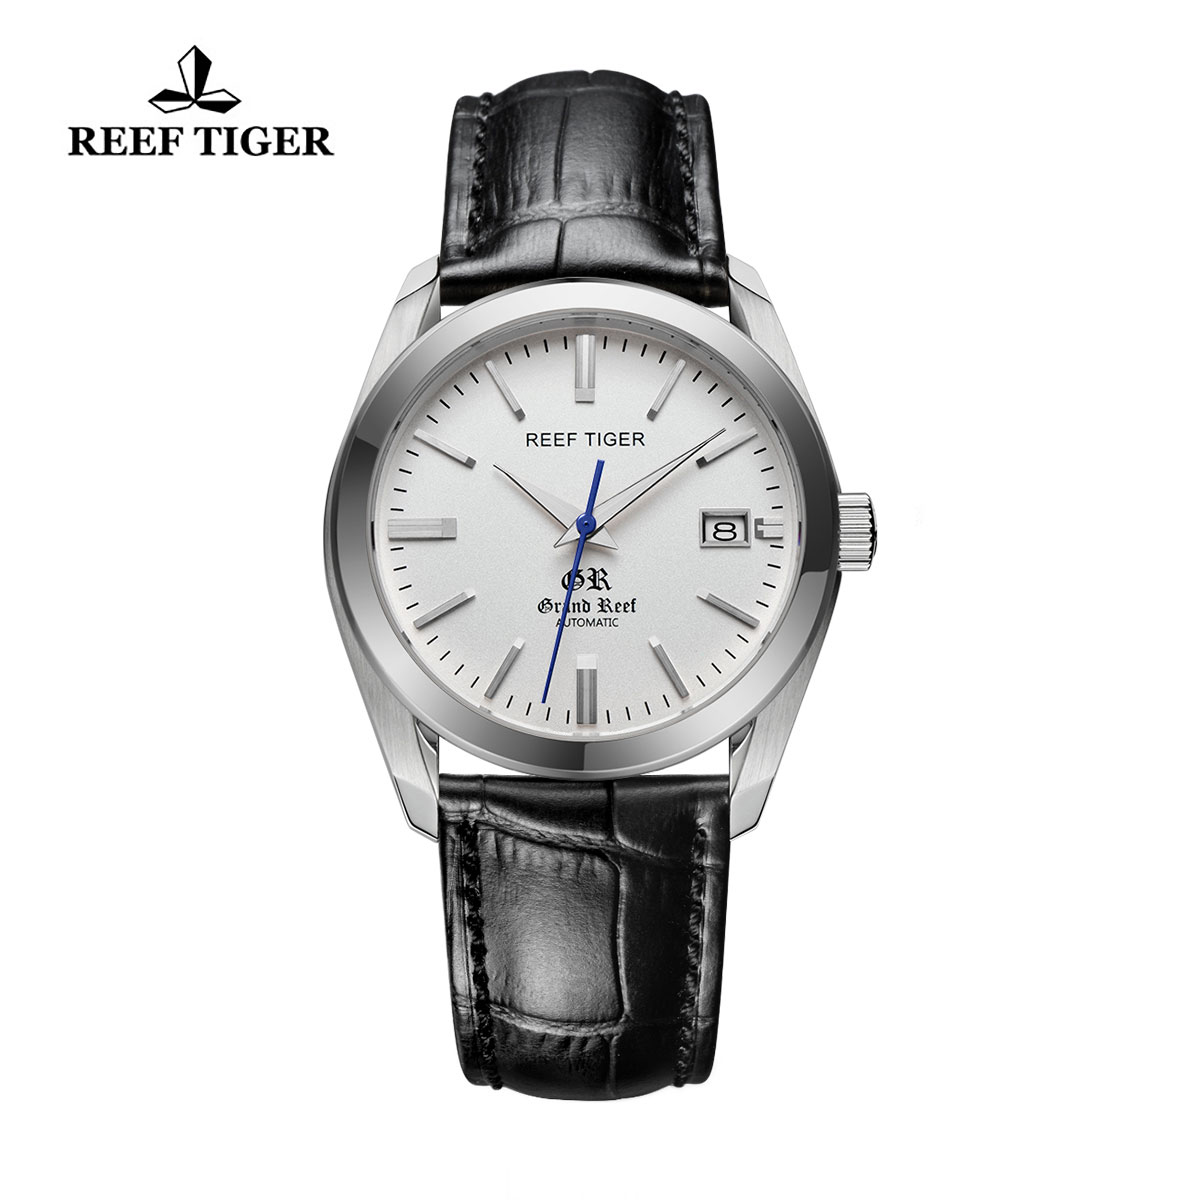 Reef Tiger Grand Reef Dress Watch with Date White Dial Calfskin Leather Steel Watch RGA818-YWB